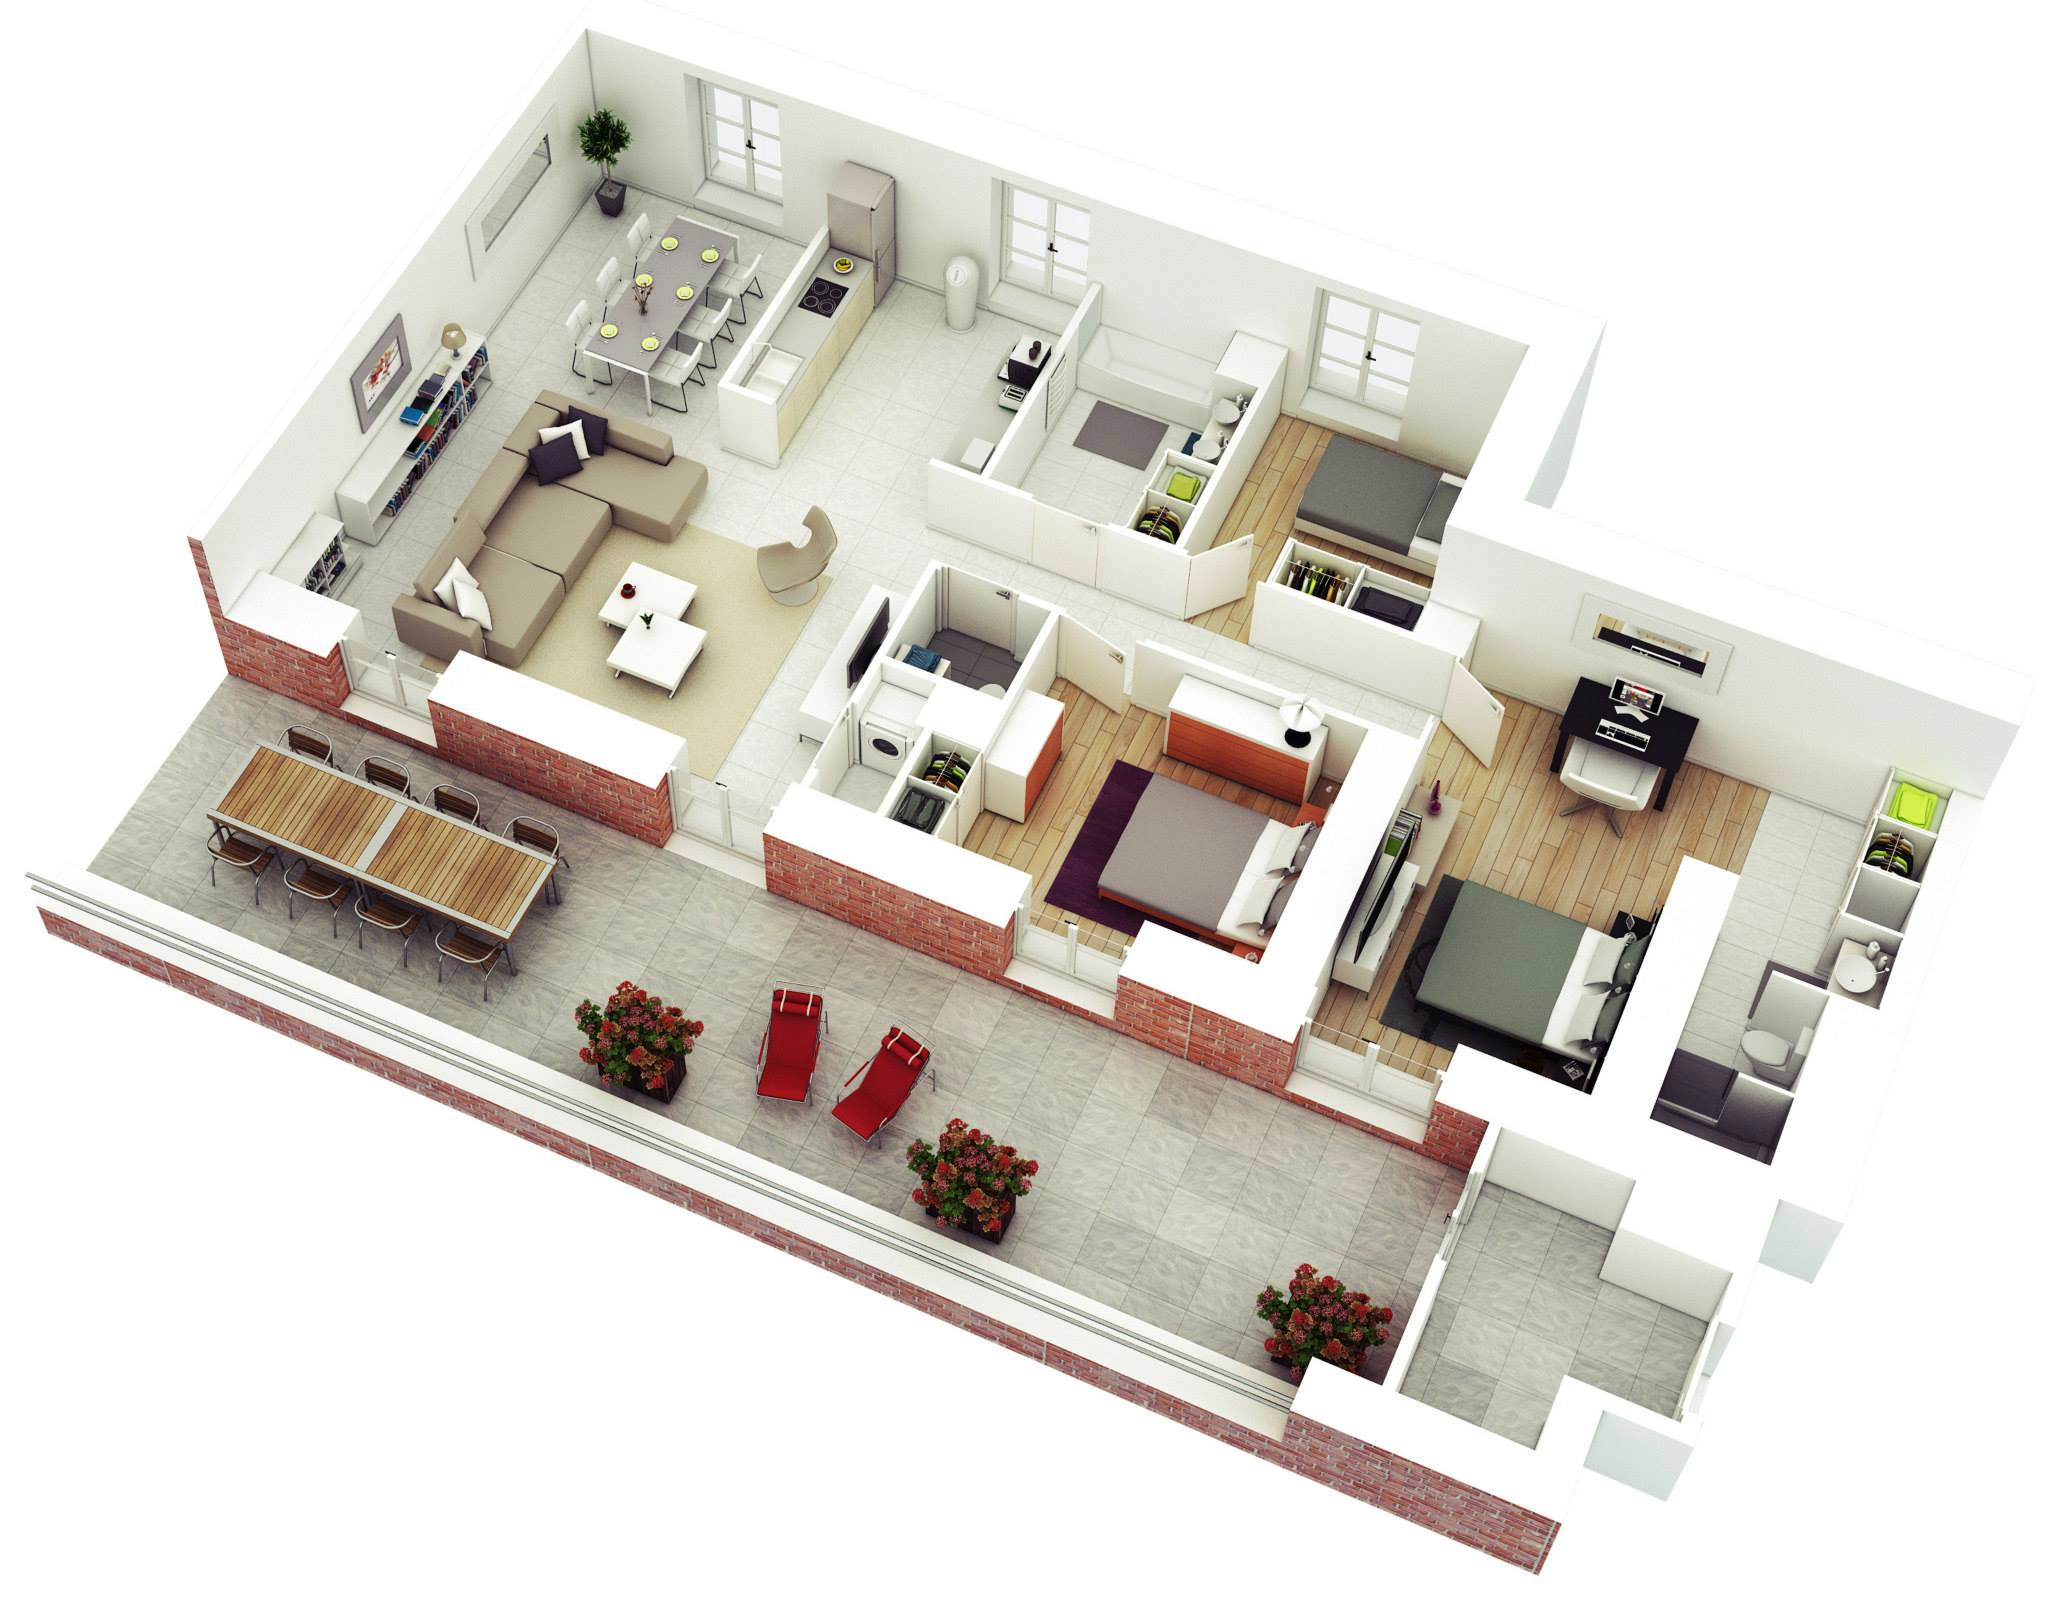 4 bedroom house floor plans 3d - 4 Bedroom House Floor Plans 3d 15